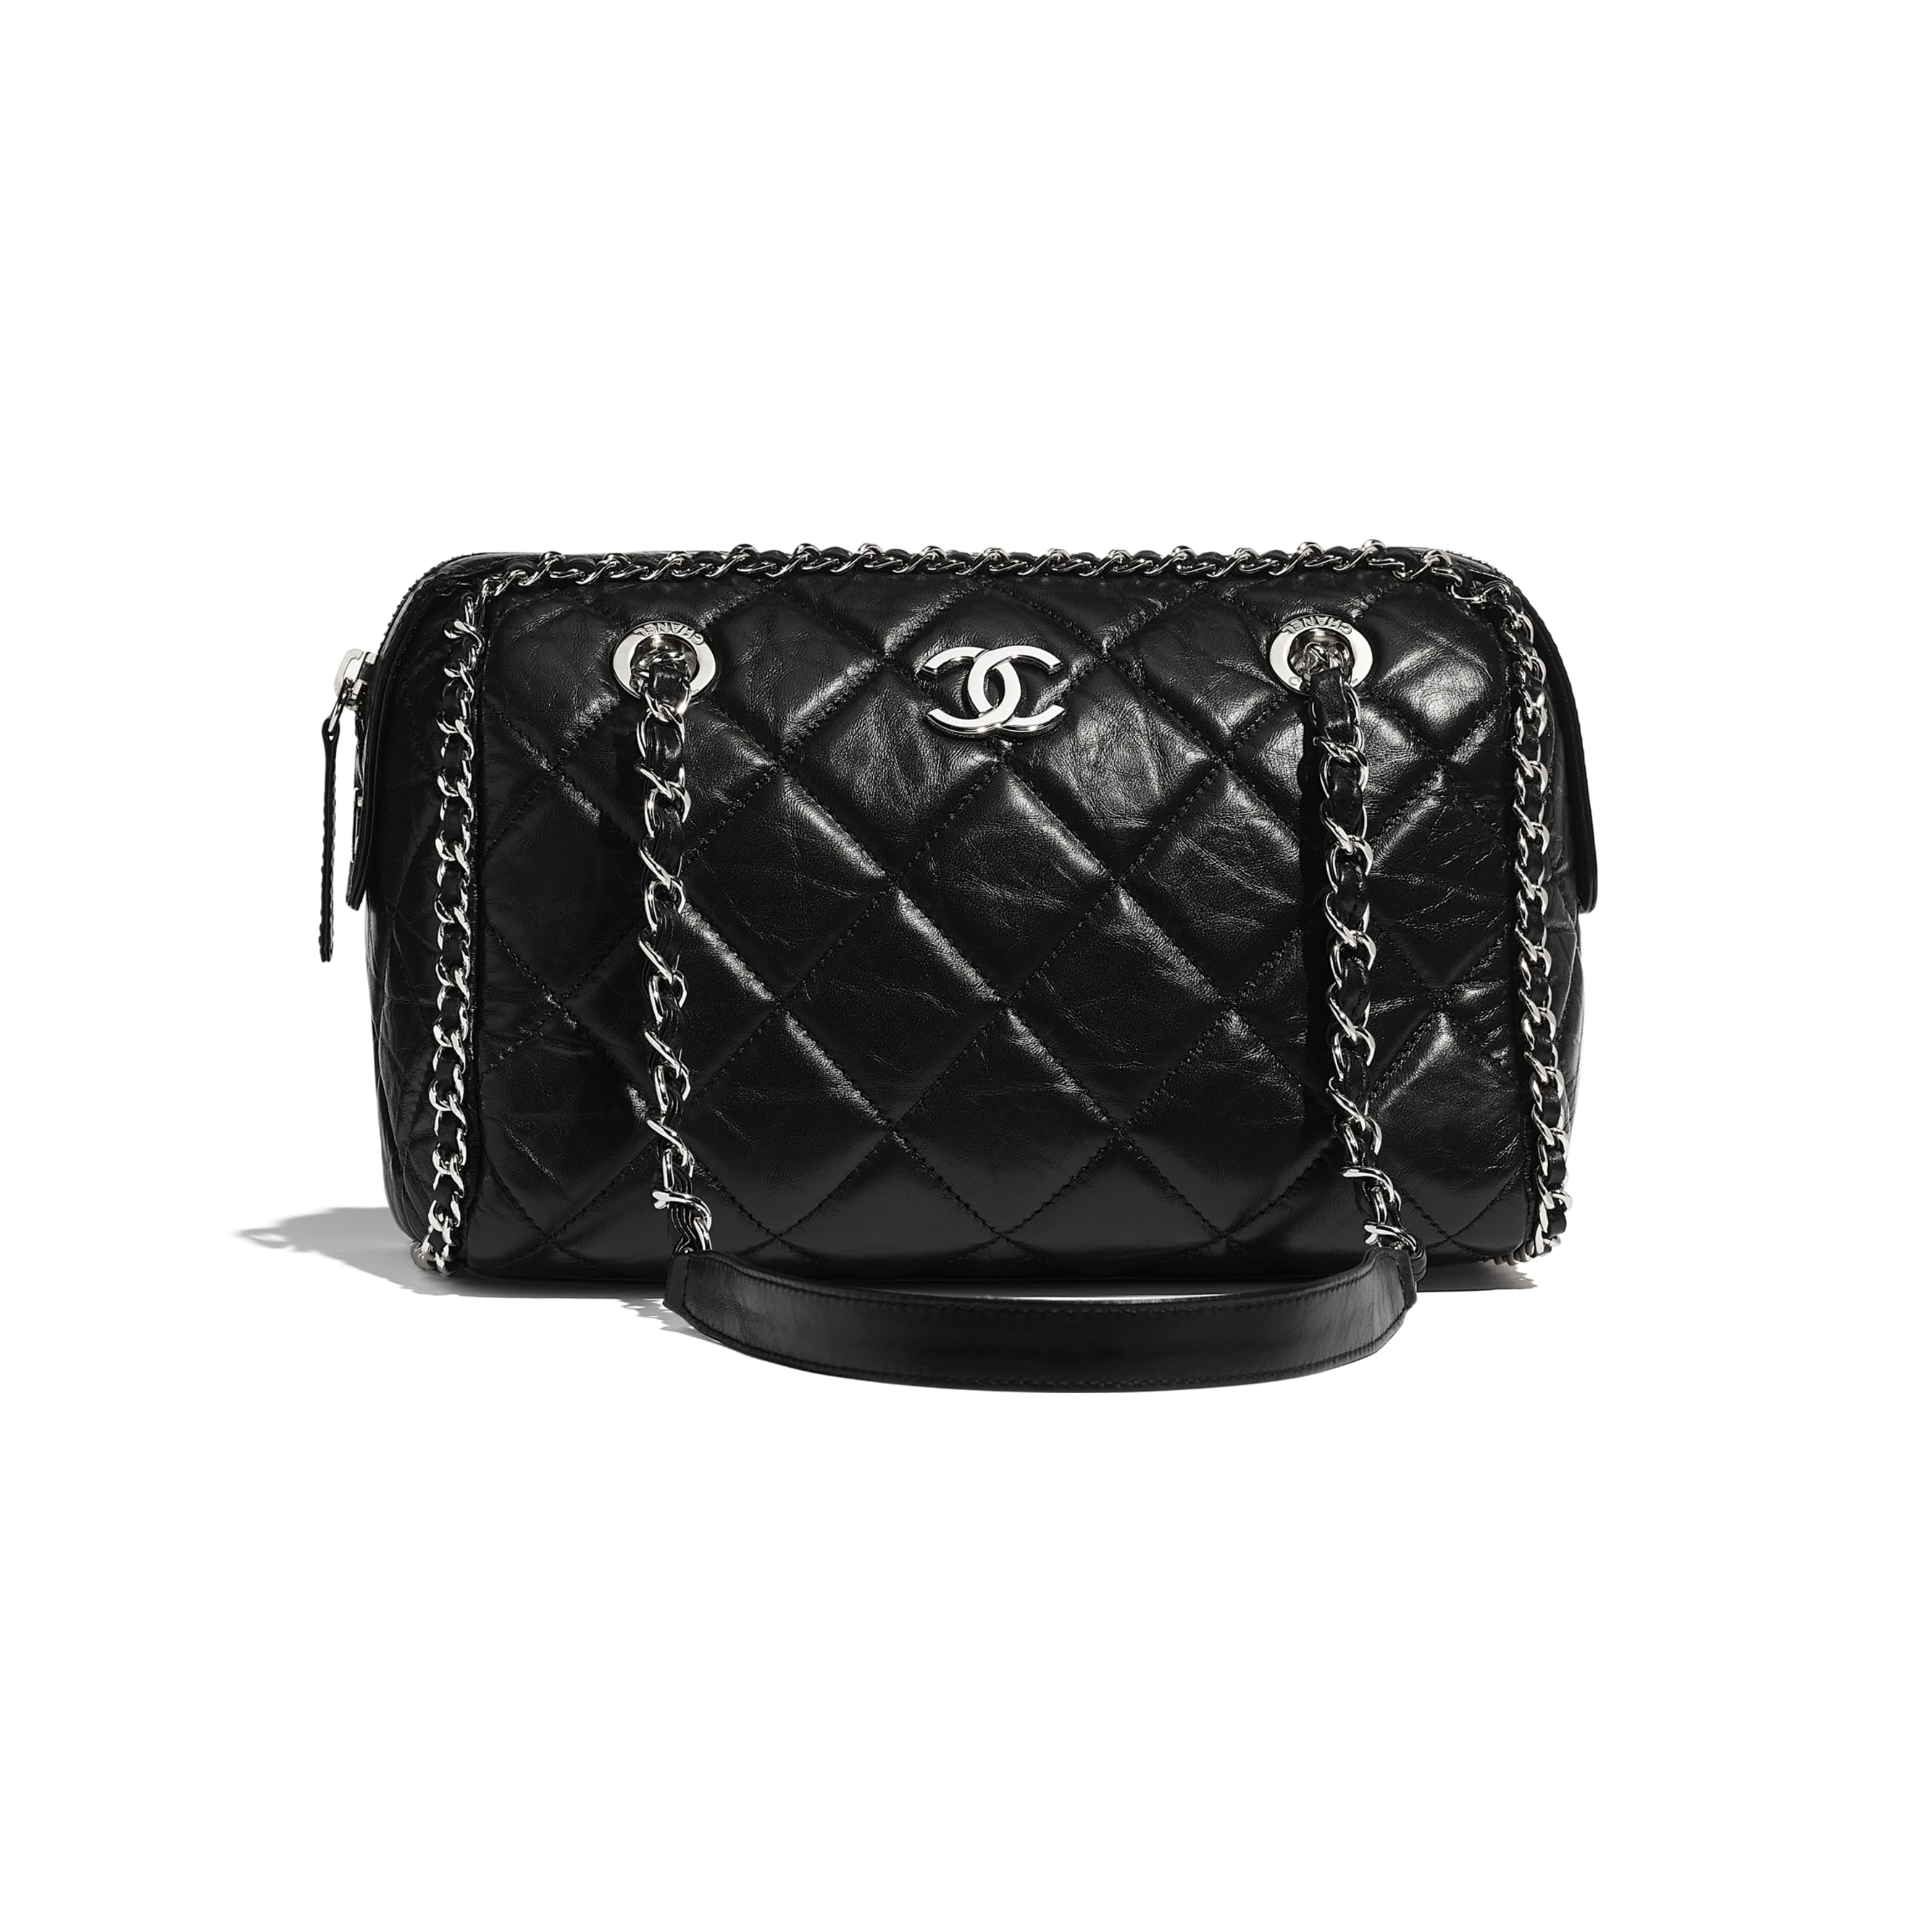 Bowling Bag - Black - Aged Calfskin & Silver-Tone Metal - CHANEL - Default view - see standard sized version